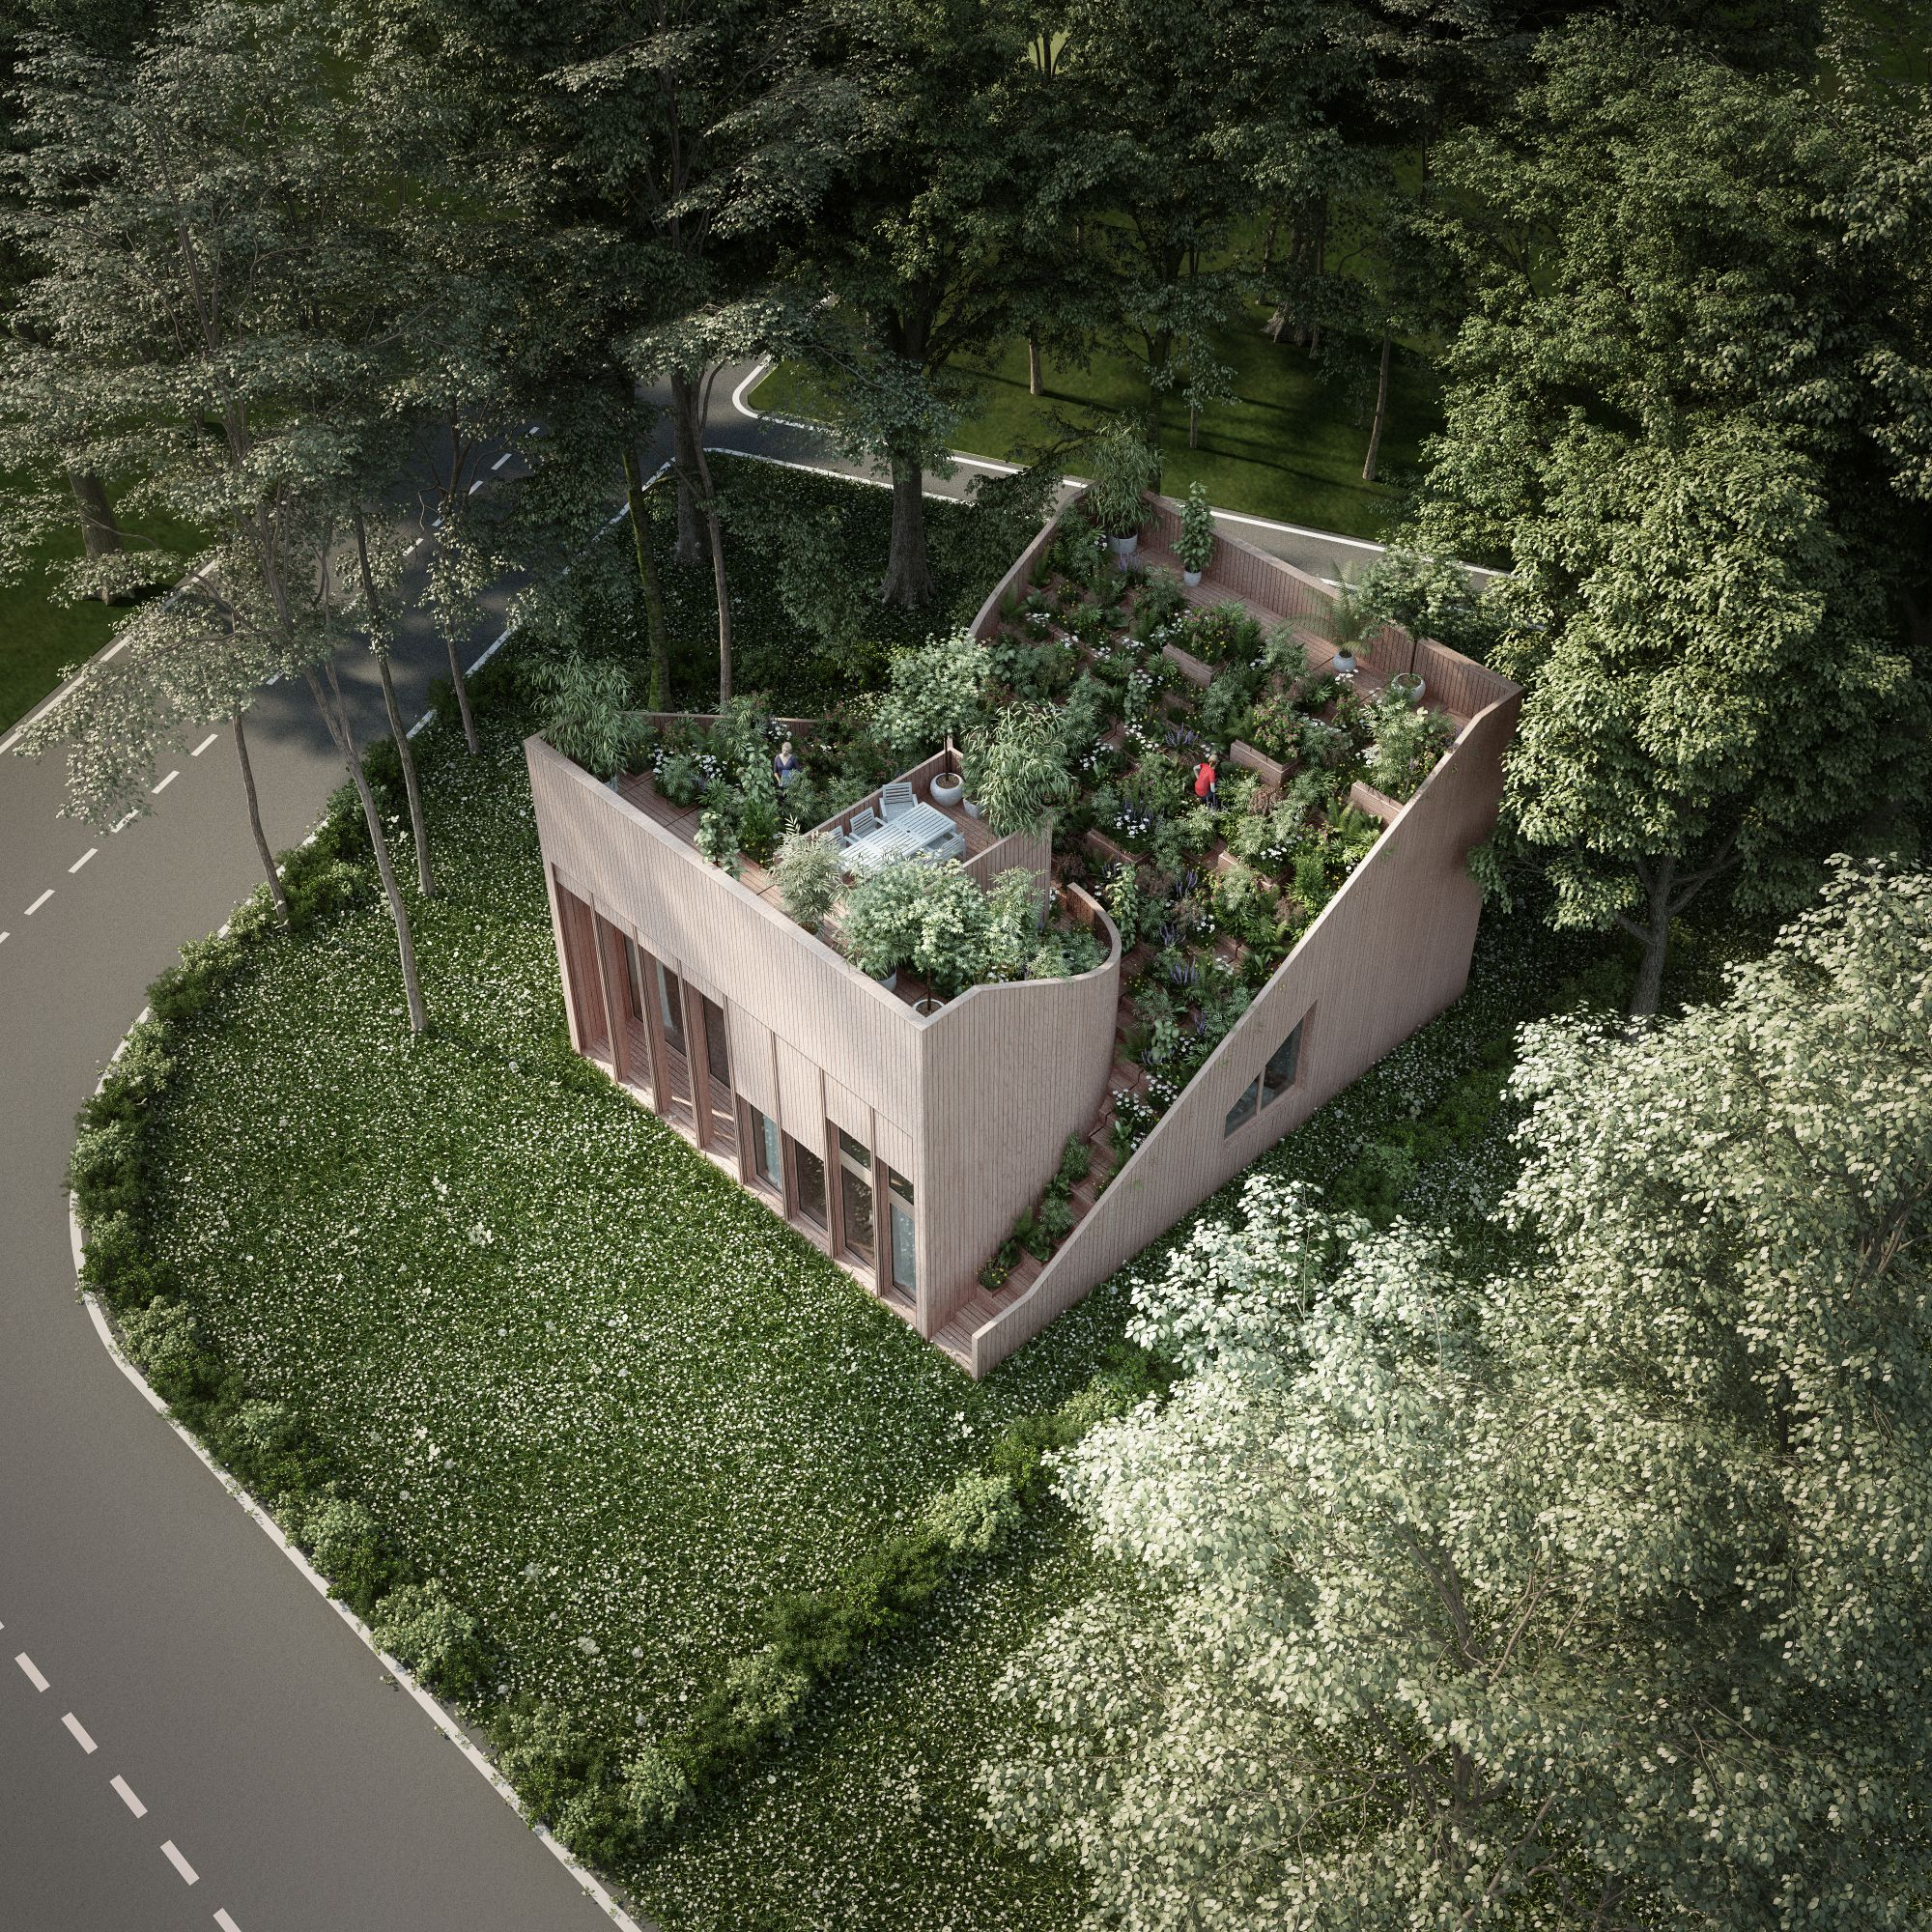 Ying and Yang House: An Off-grid Nature-integrated Residence in Germany - Arch2O.com